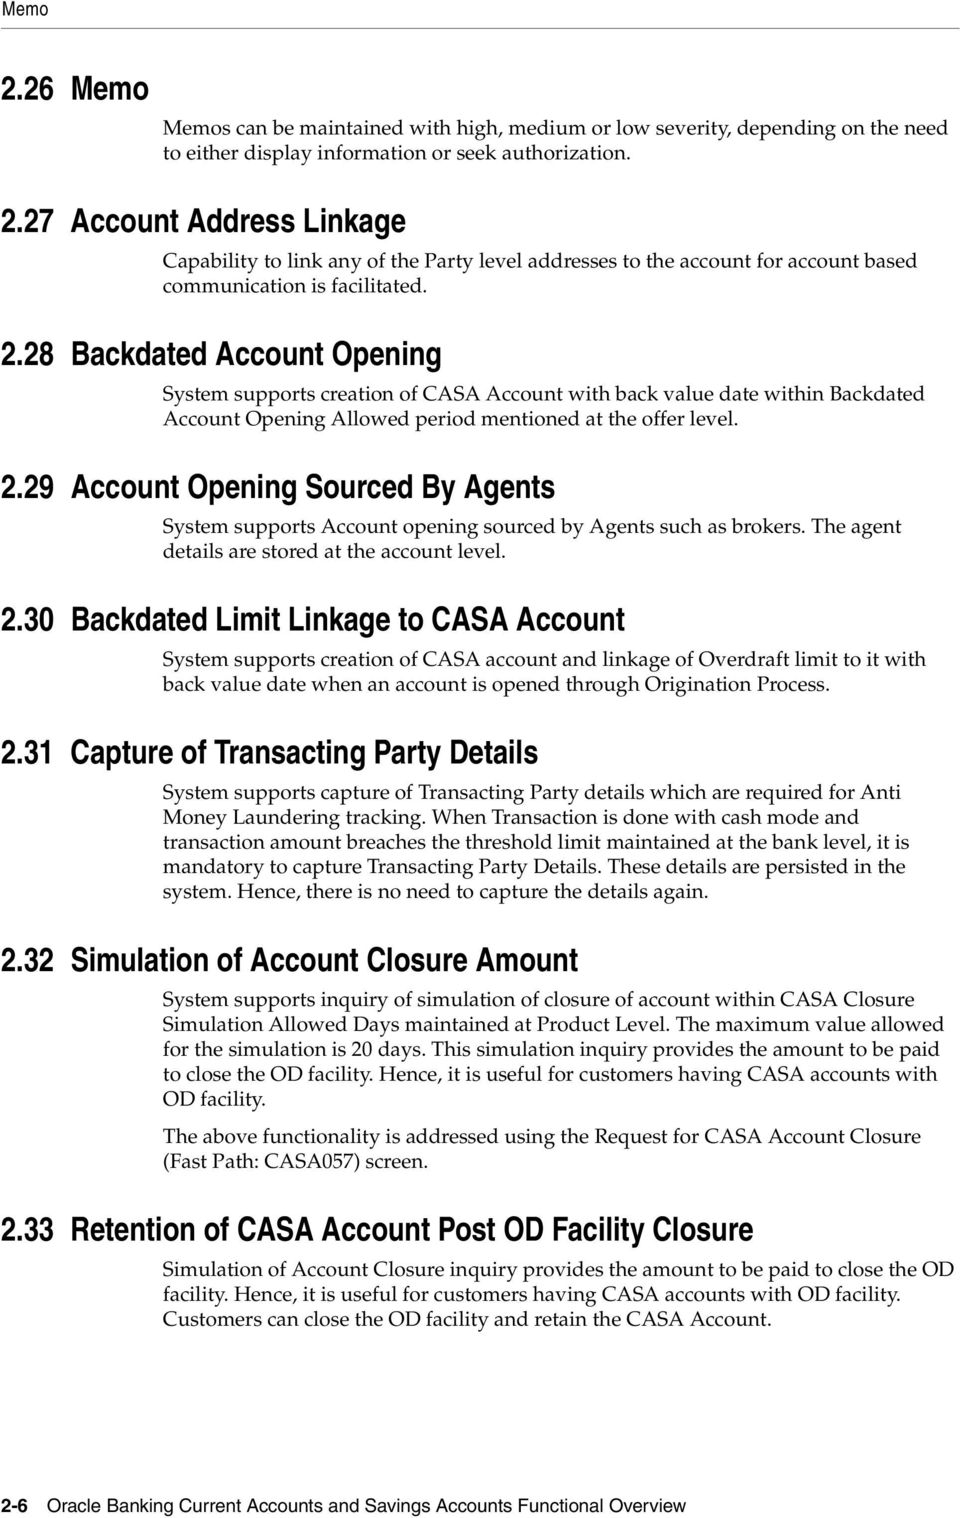 29 Account Opening Sourced By Agents System supports Account opening sourced by Agents such as brokers. The agent details are stored at the account level. 2.